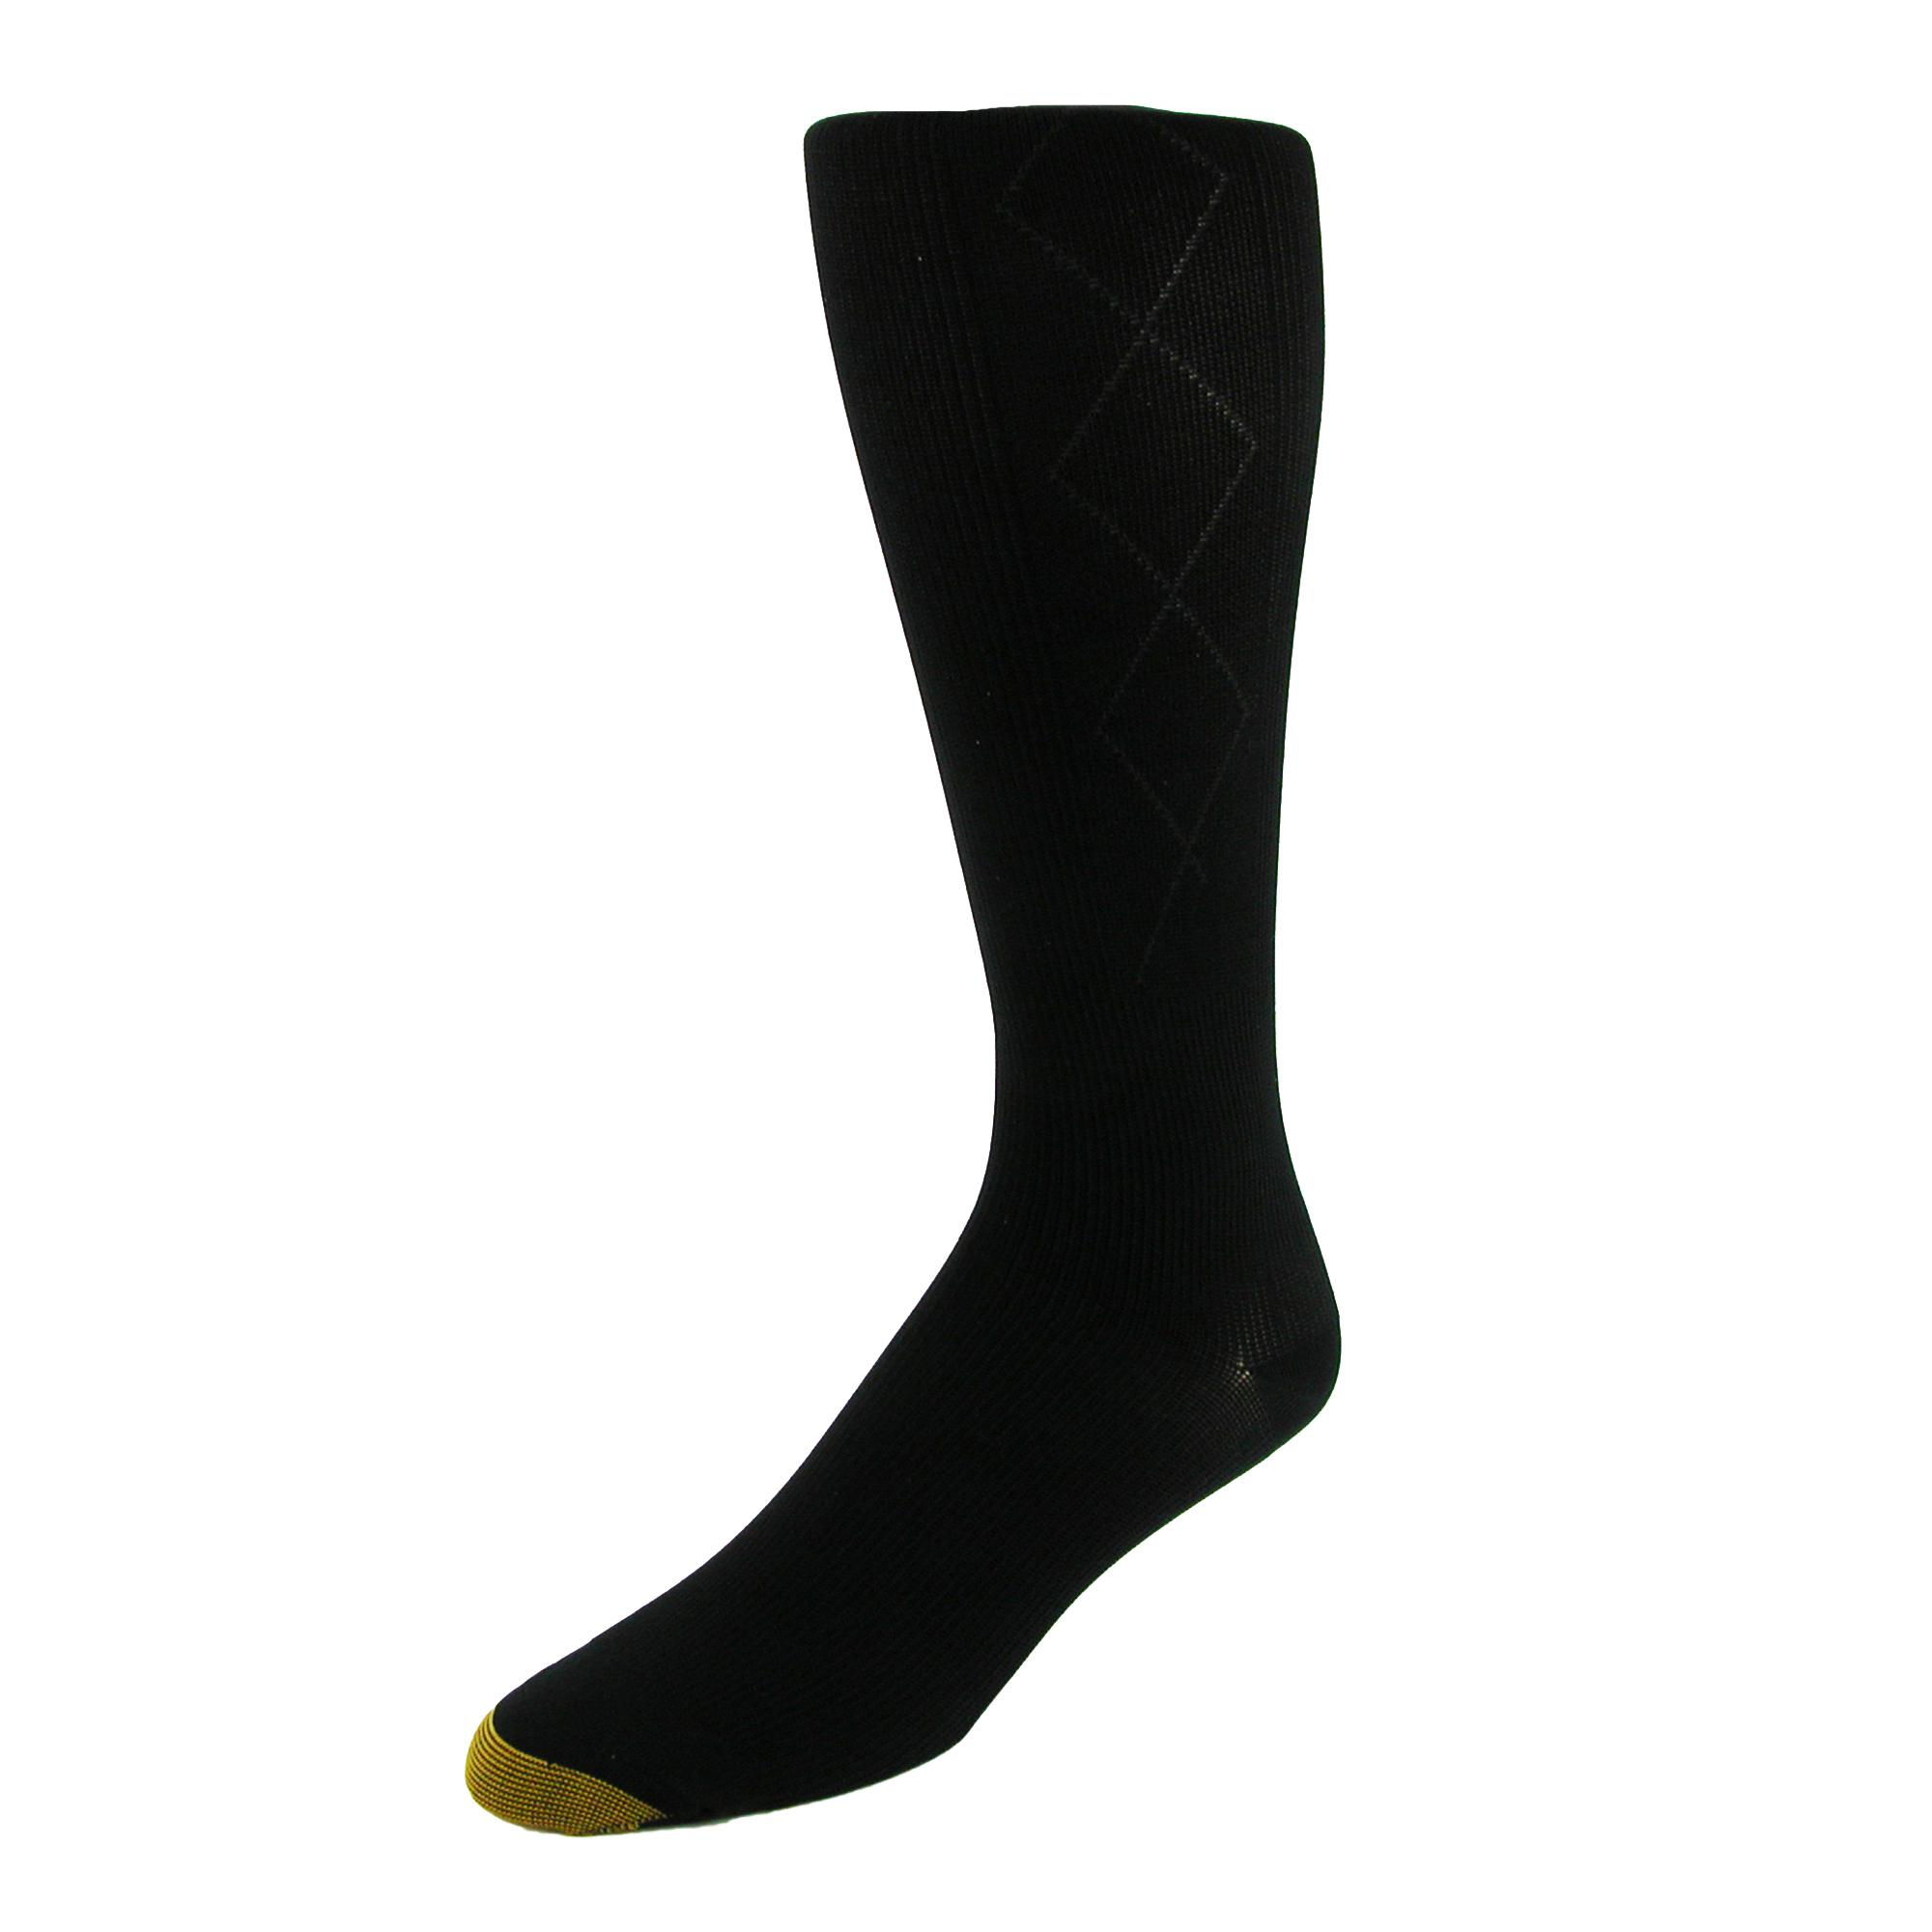 ecca75a11a338 Details about New Gold Toe Men's Argyle Mild Compression Over the Calf Socks